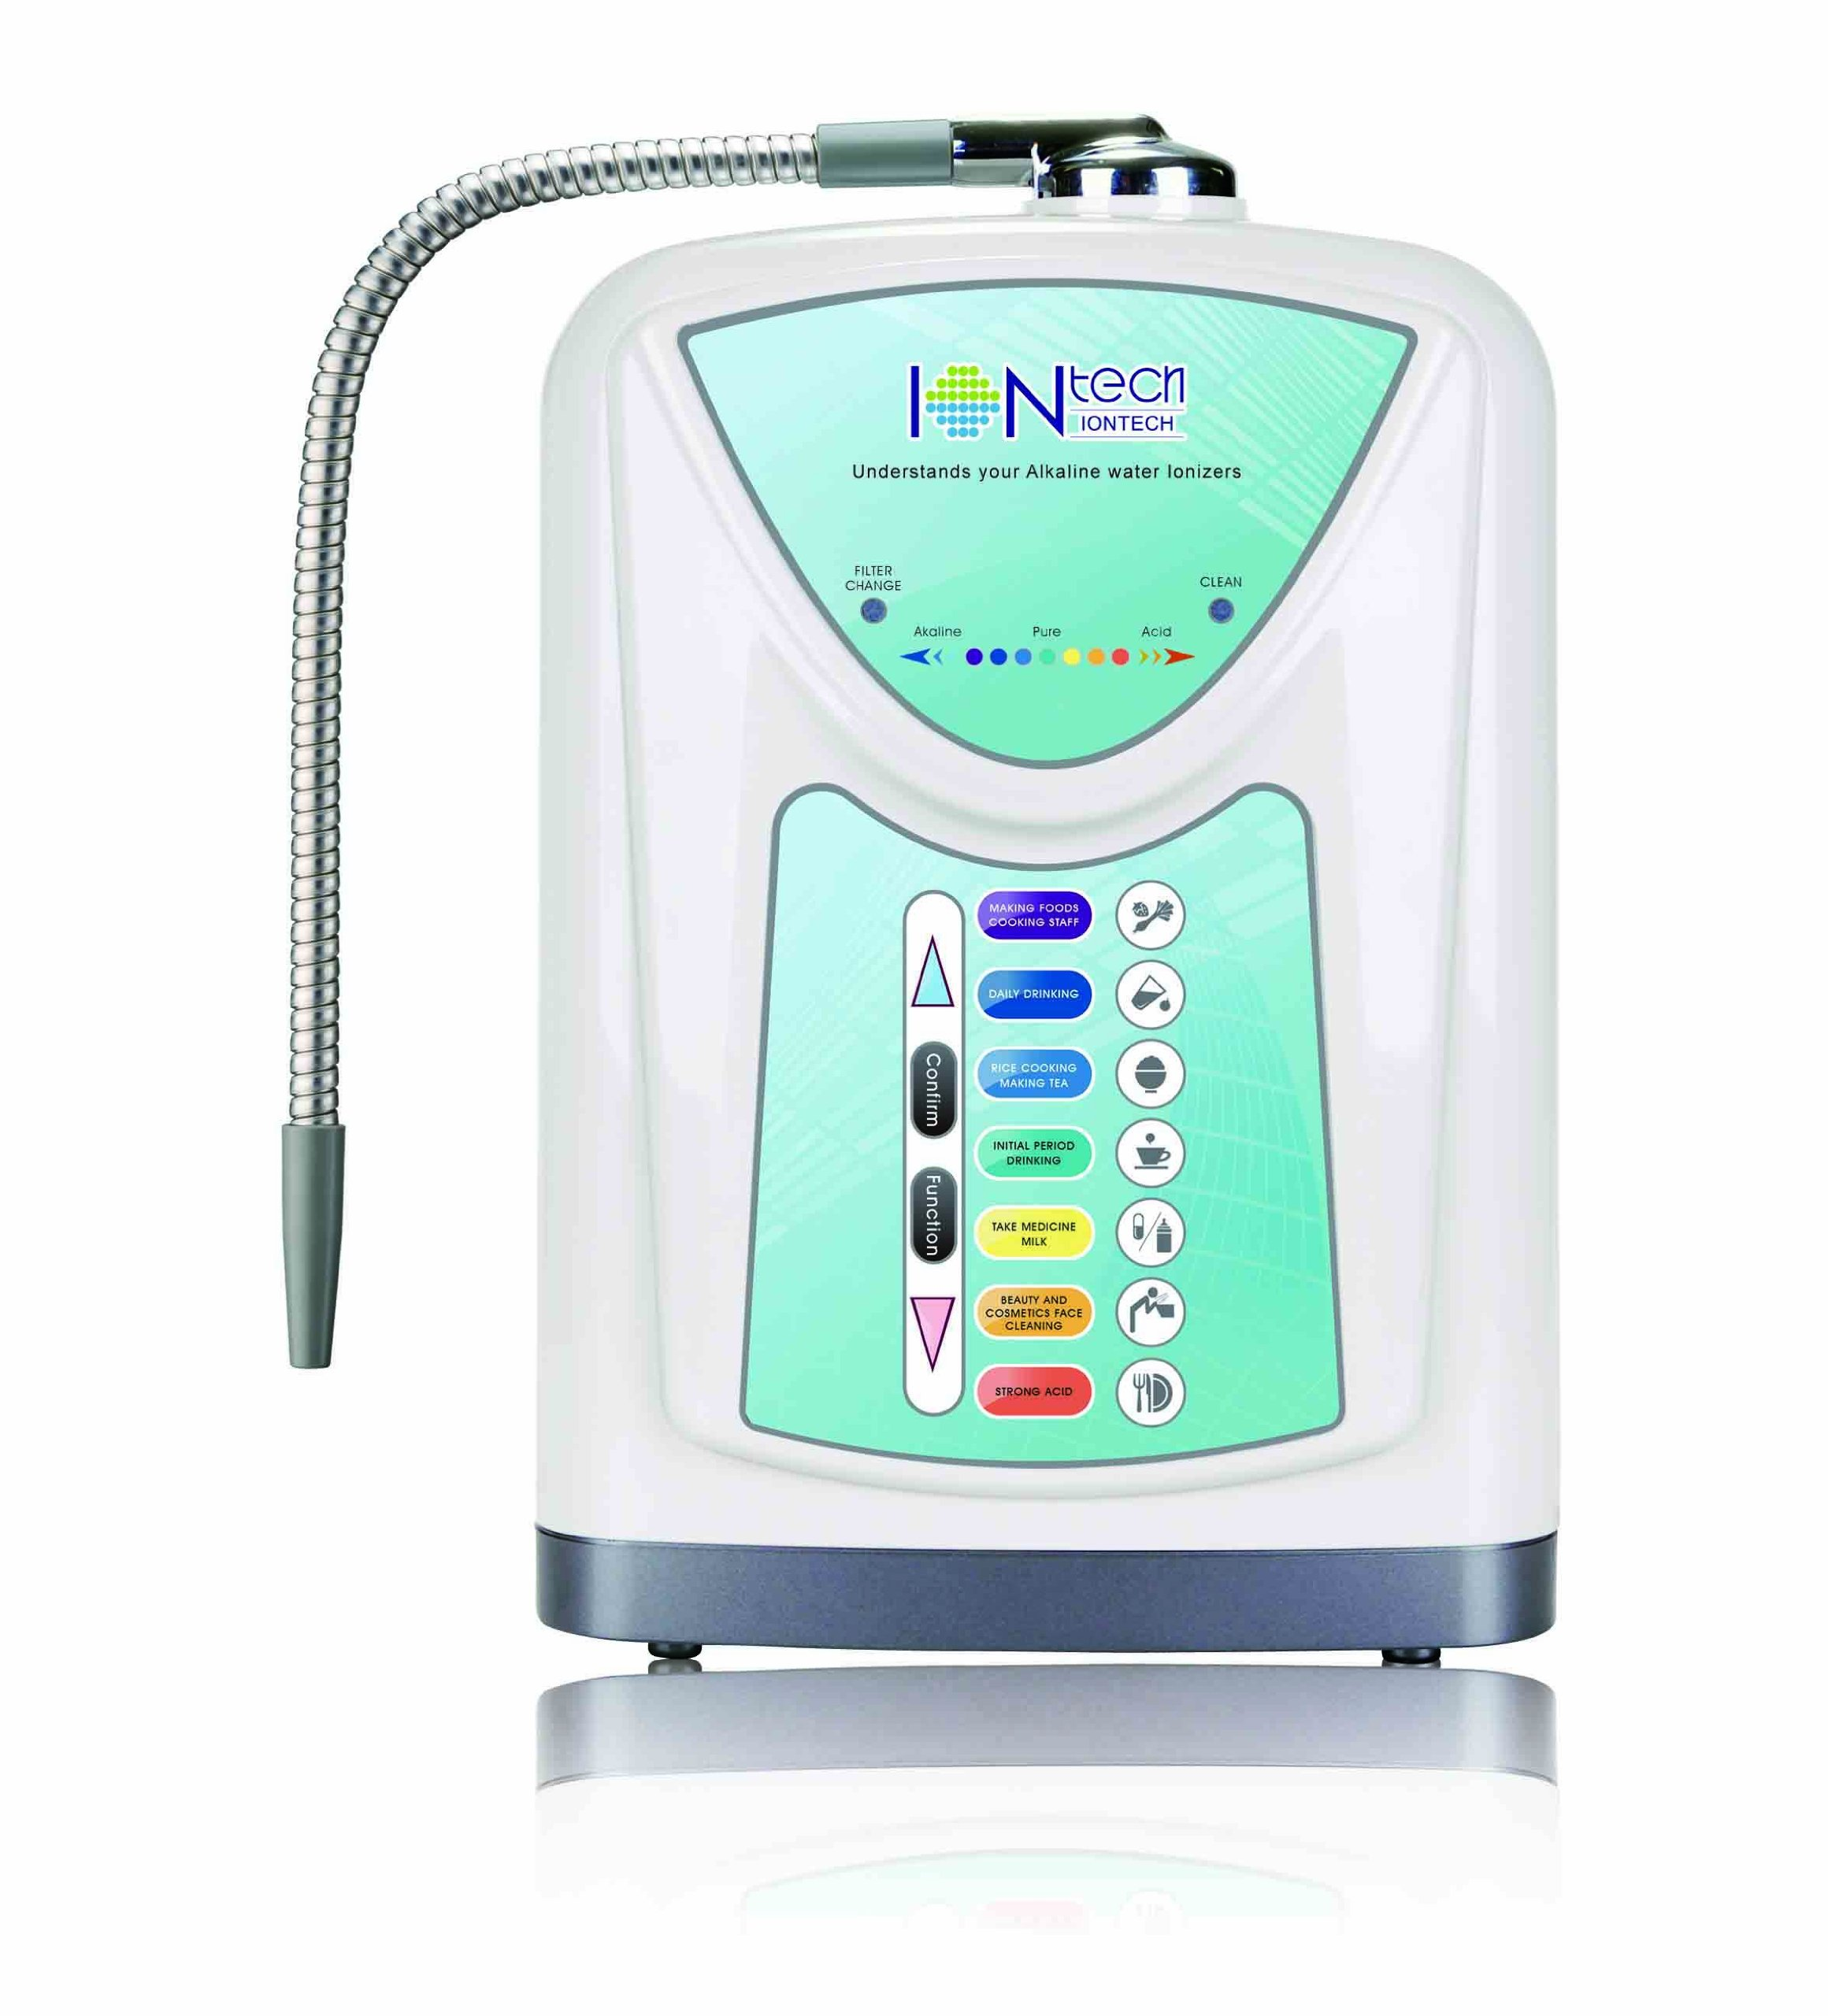 NEW Alkaline Water Ionizer Machine with Filter IONtech IT-580 by IntelGadgets. Powerful, Affordable, FREE Filter.